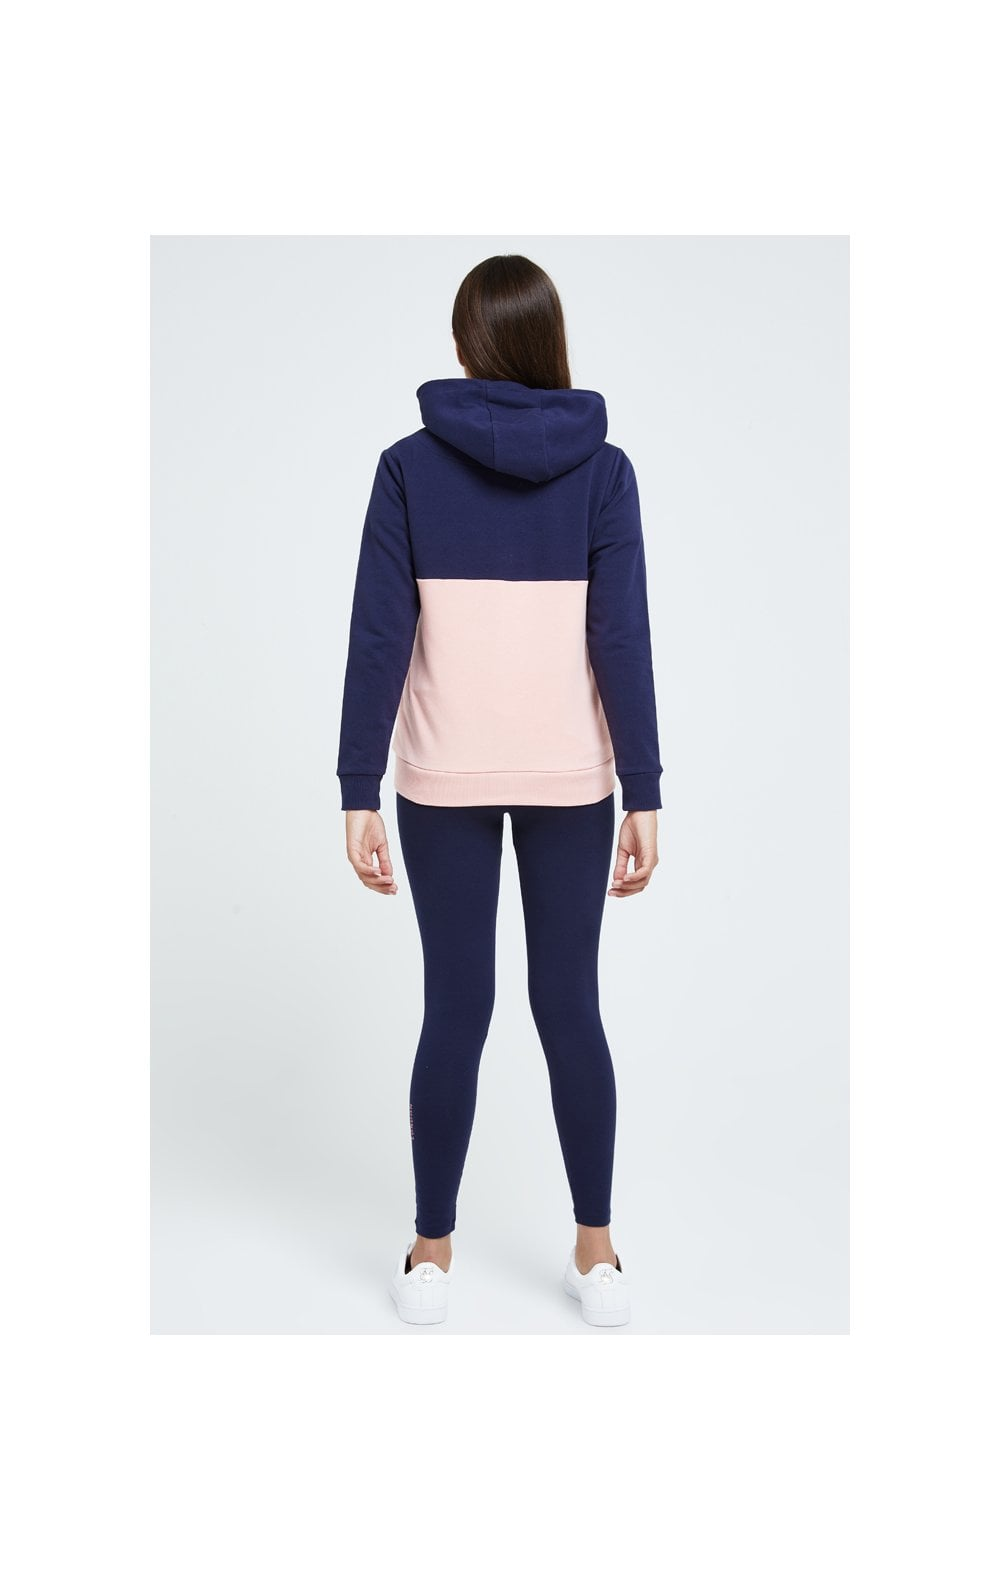 Illusive London Colour Block Hoodie - Navy & Pink (4)